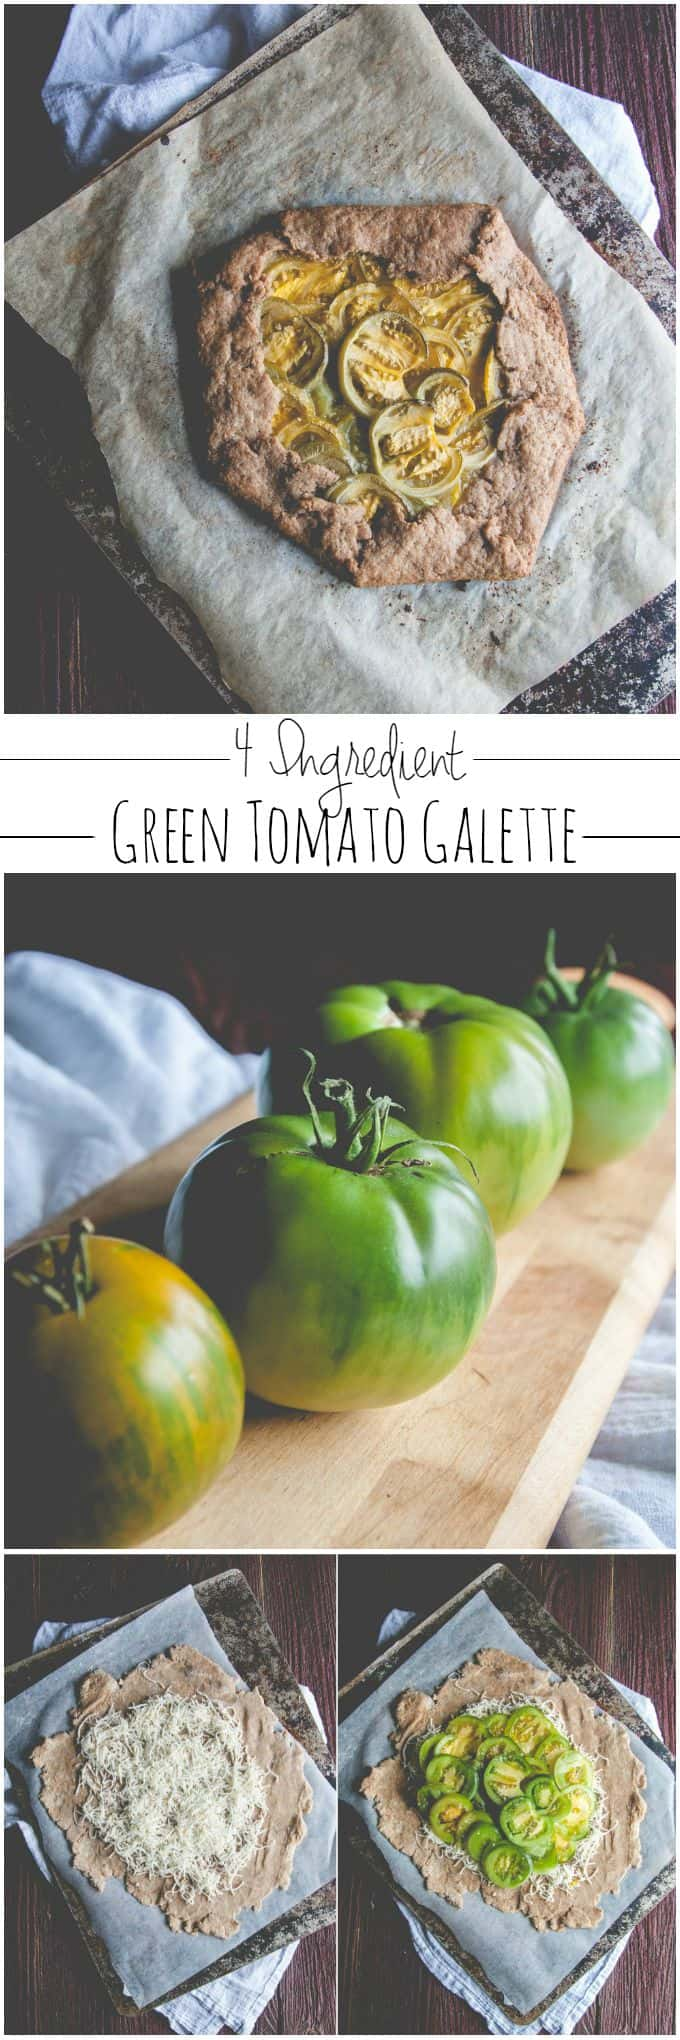 4 ingredient whole wheat green tomato galette from @sweetphi